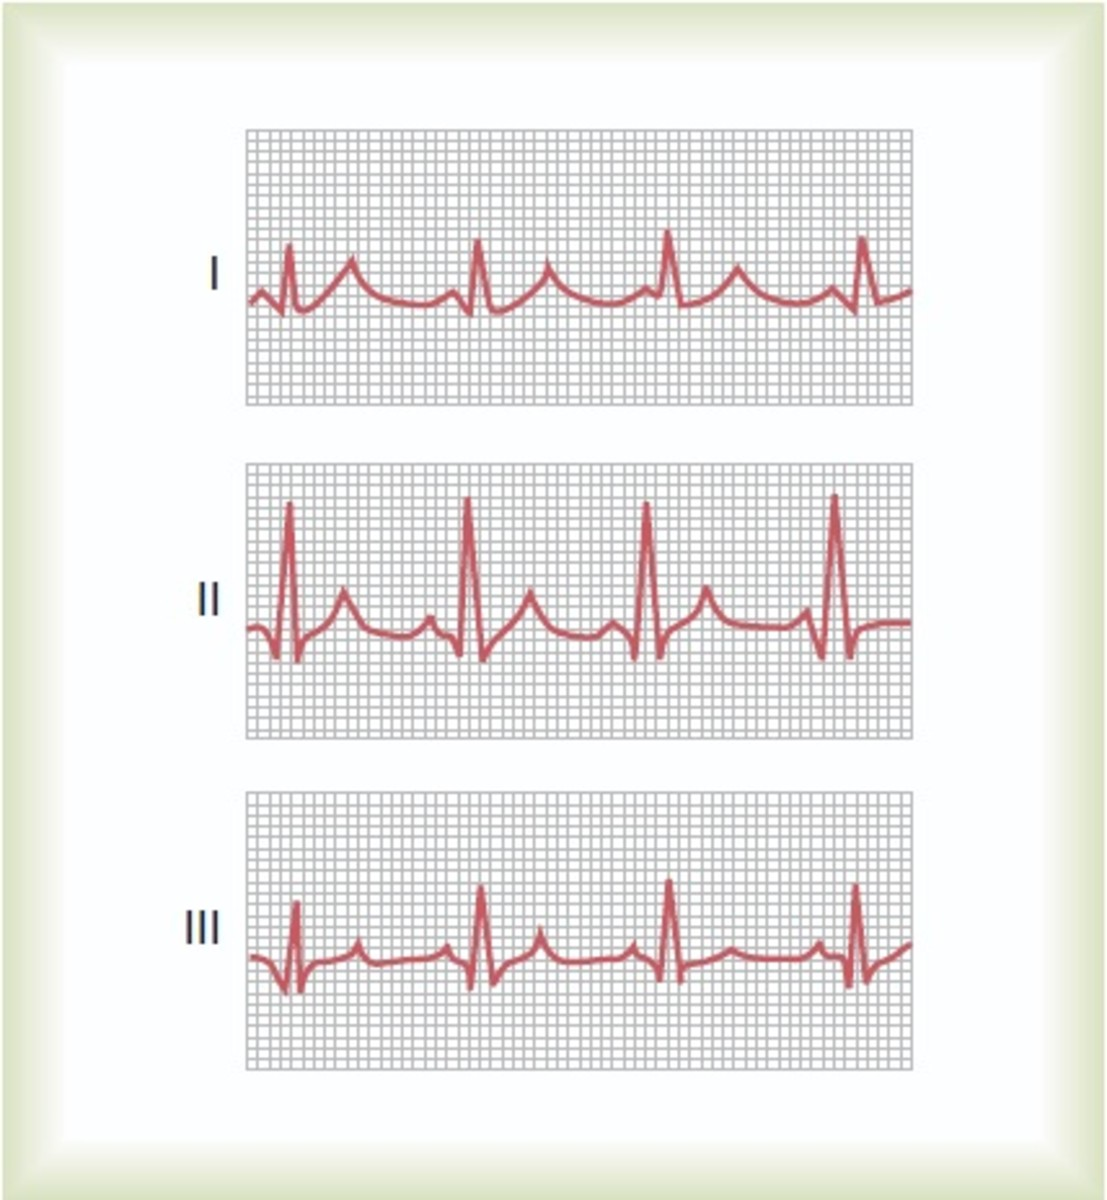 Normal ECG in 3 bipolar limb leads